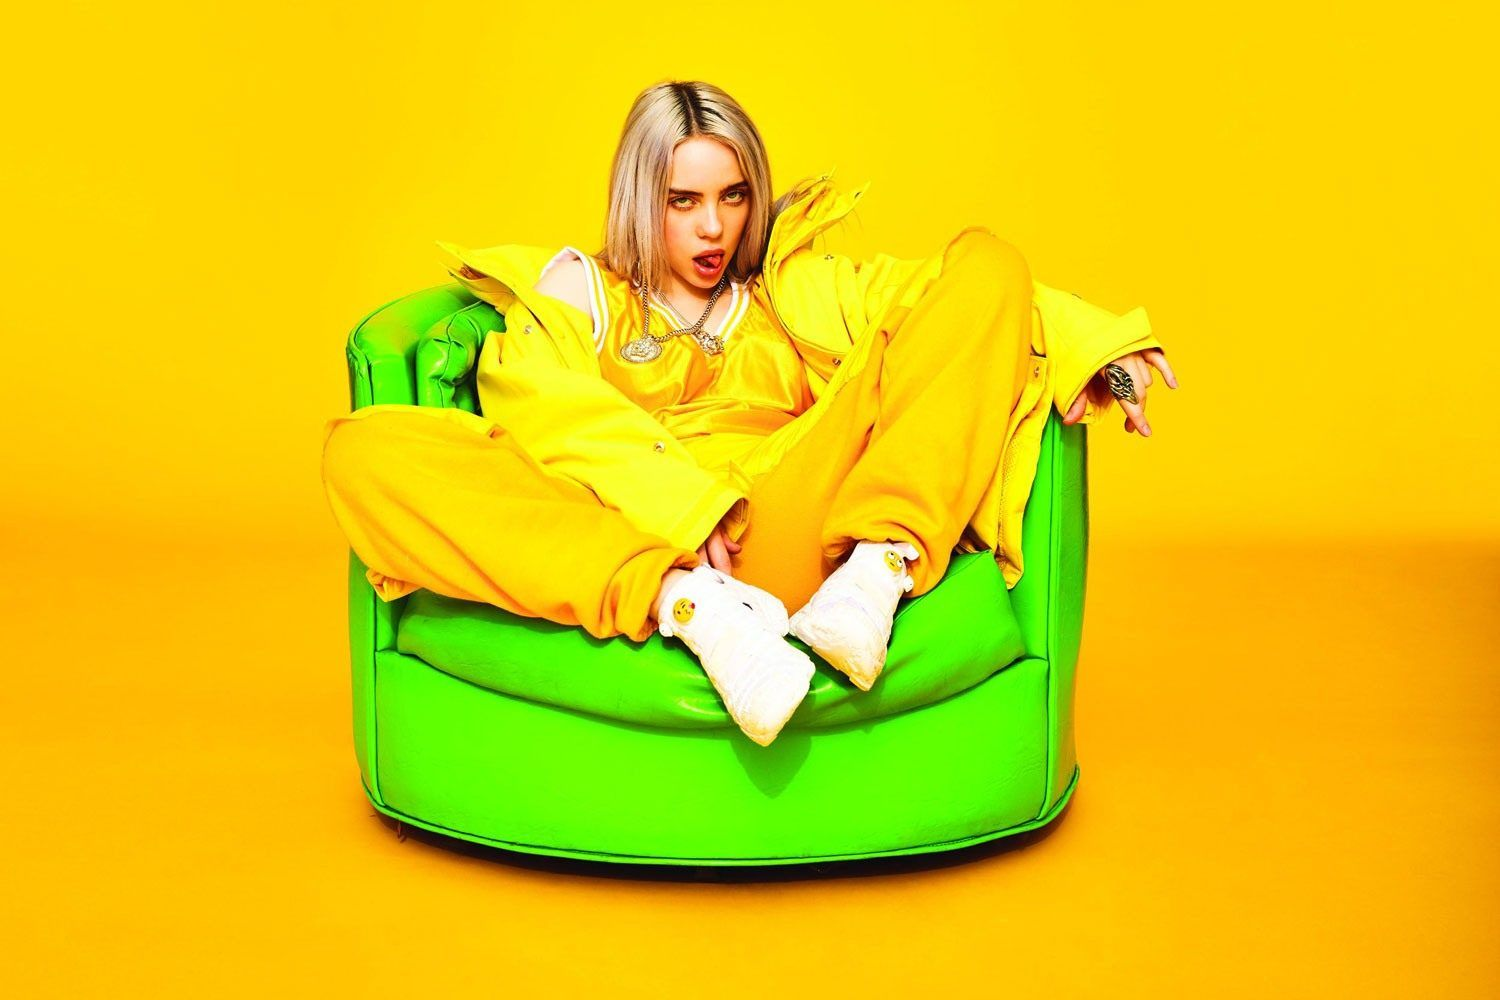 Billie Eilish Sitting In A Yellow Room In A Beautiful Yellow